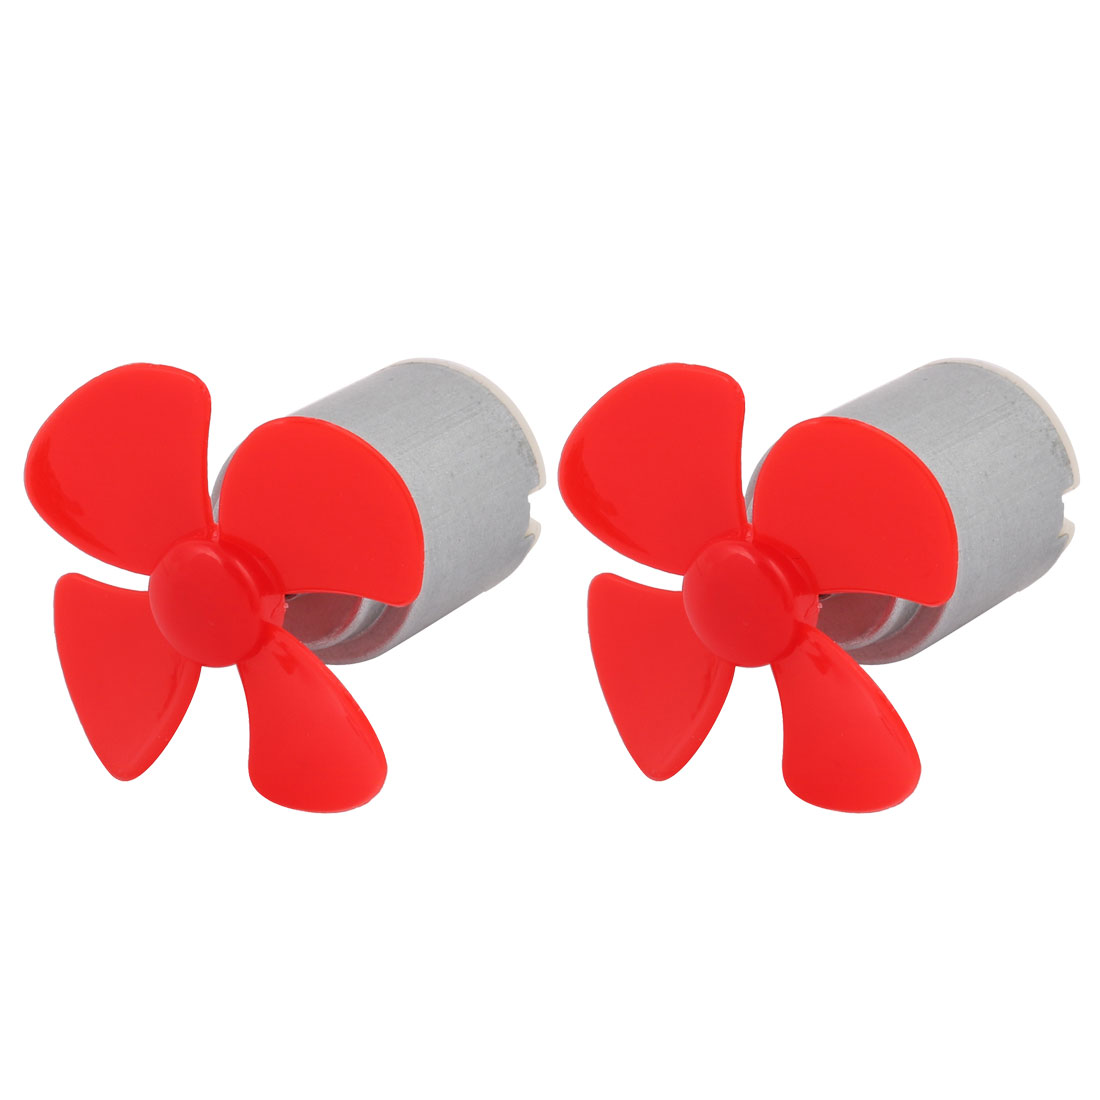 2pcs DC 3V 0.13A 13000RPM Strong Force Motor 4 Vanes 40mm Red Propeller for RC Aircraft